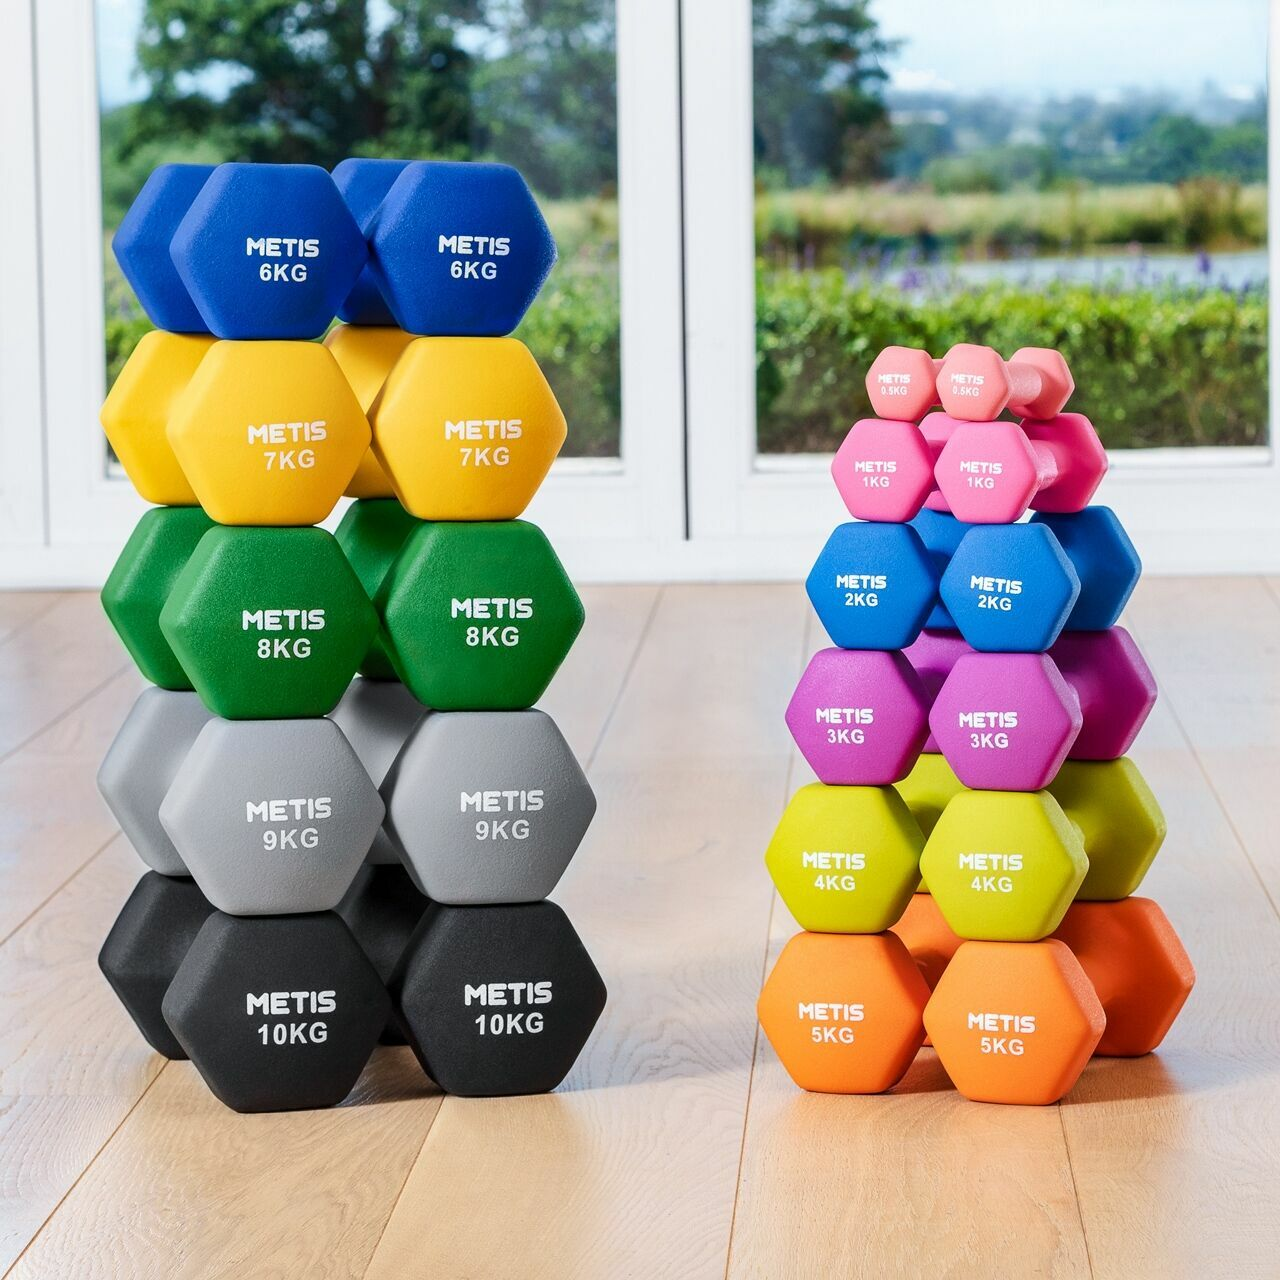 METIS Neoprene Hex Dumbbells x2 [1lb-22lbs] - Pair